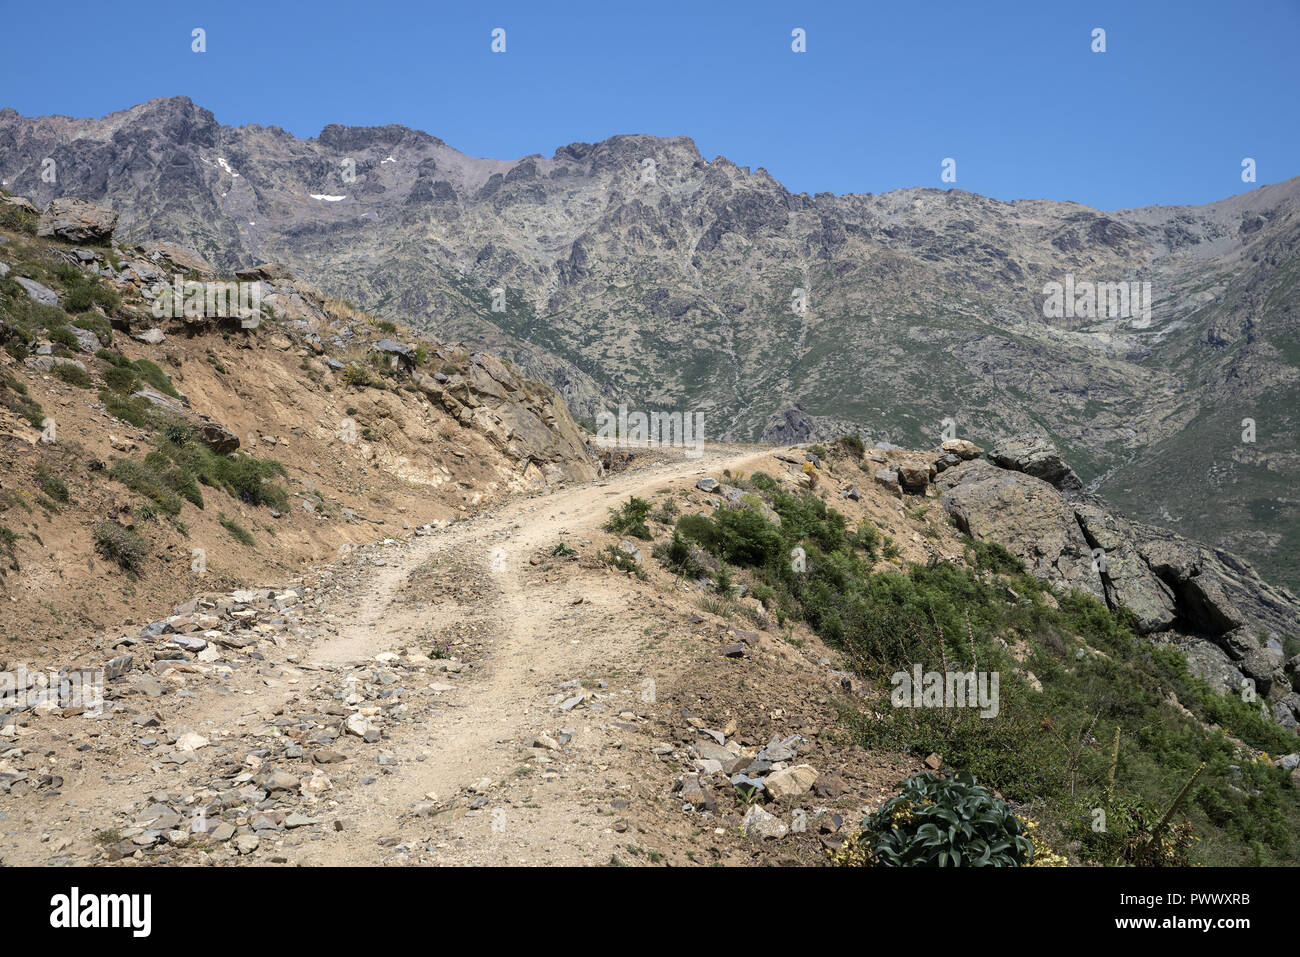 Dangerous road in high mountains. Massif Monte Cinto, the highest mountain in Corsica (2706 m). Masyw Monte Cinto, najwyższa góra na Korsyce (2706 m). - Stock Image